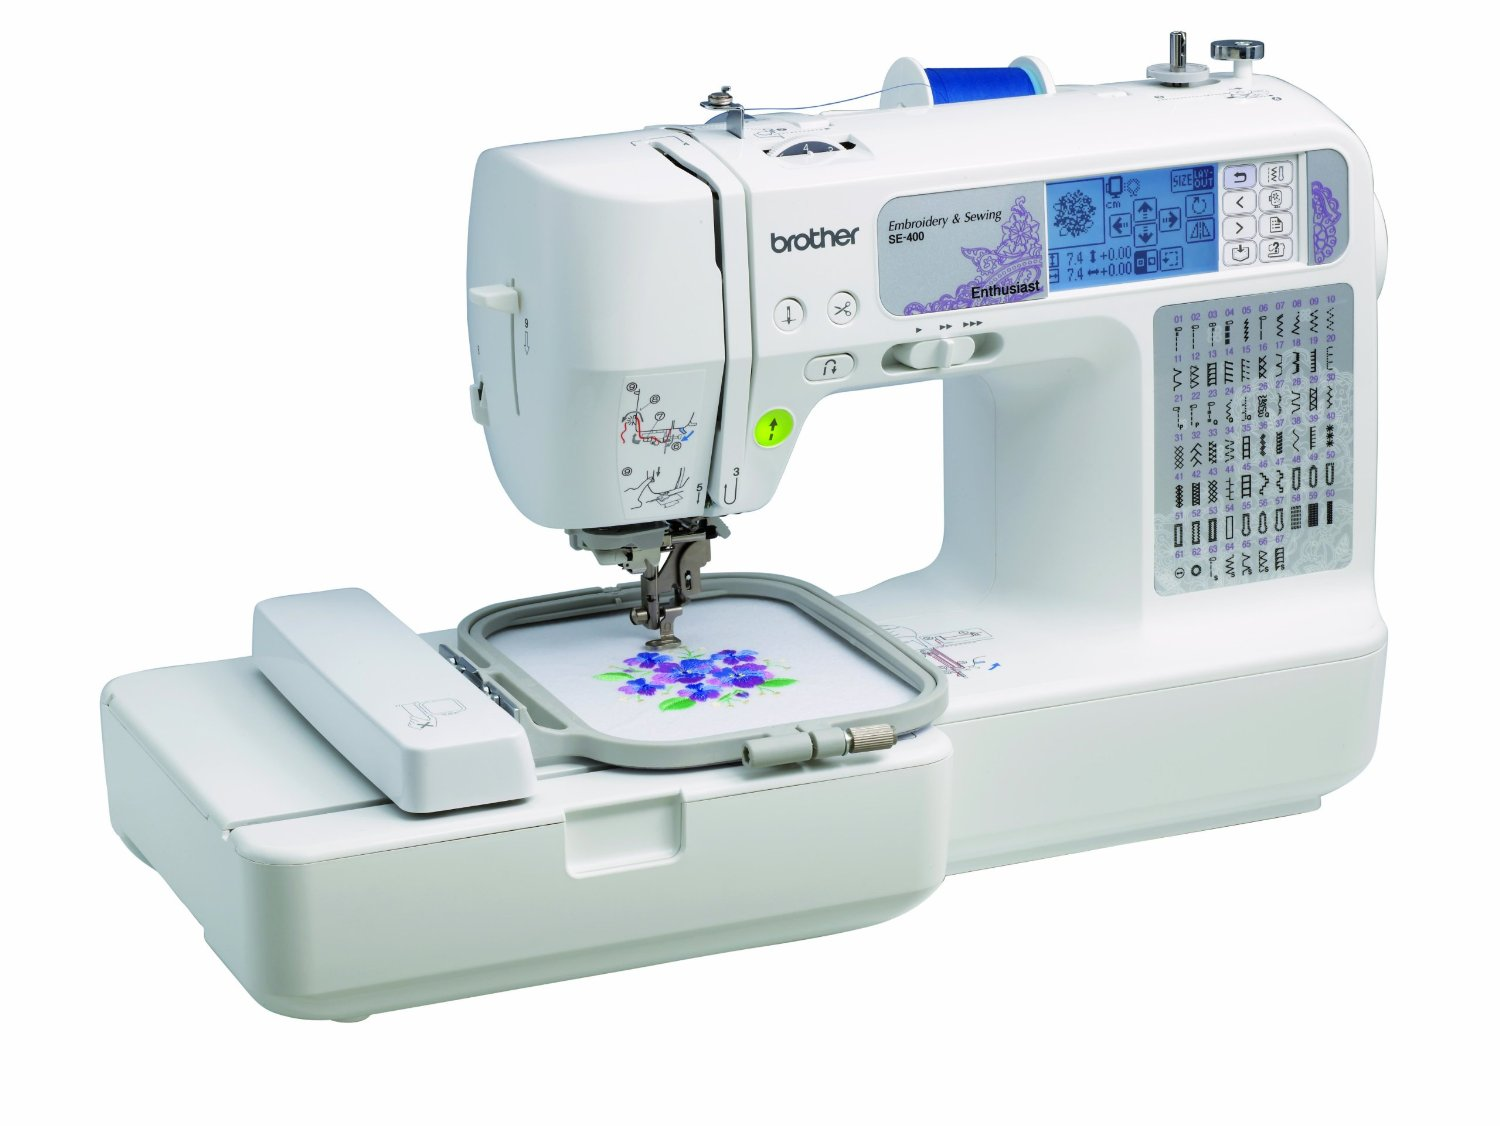 Review of Brother SE400 Computerized Sewing and 4x4 Embroide ...